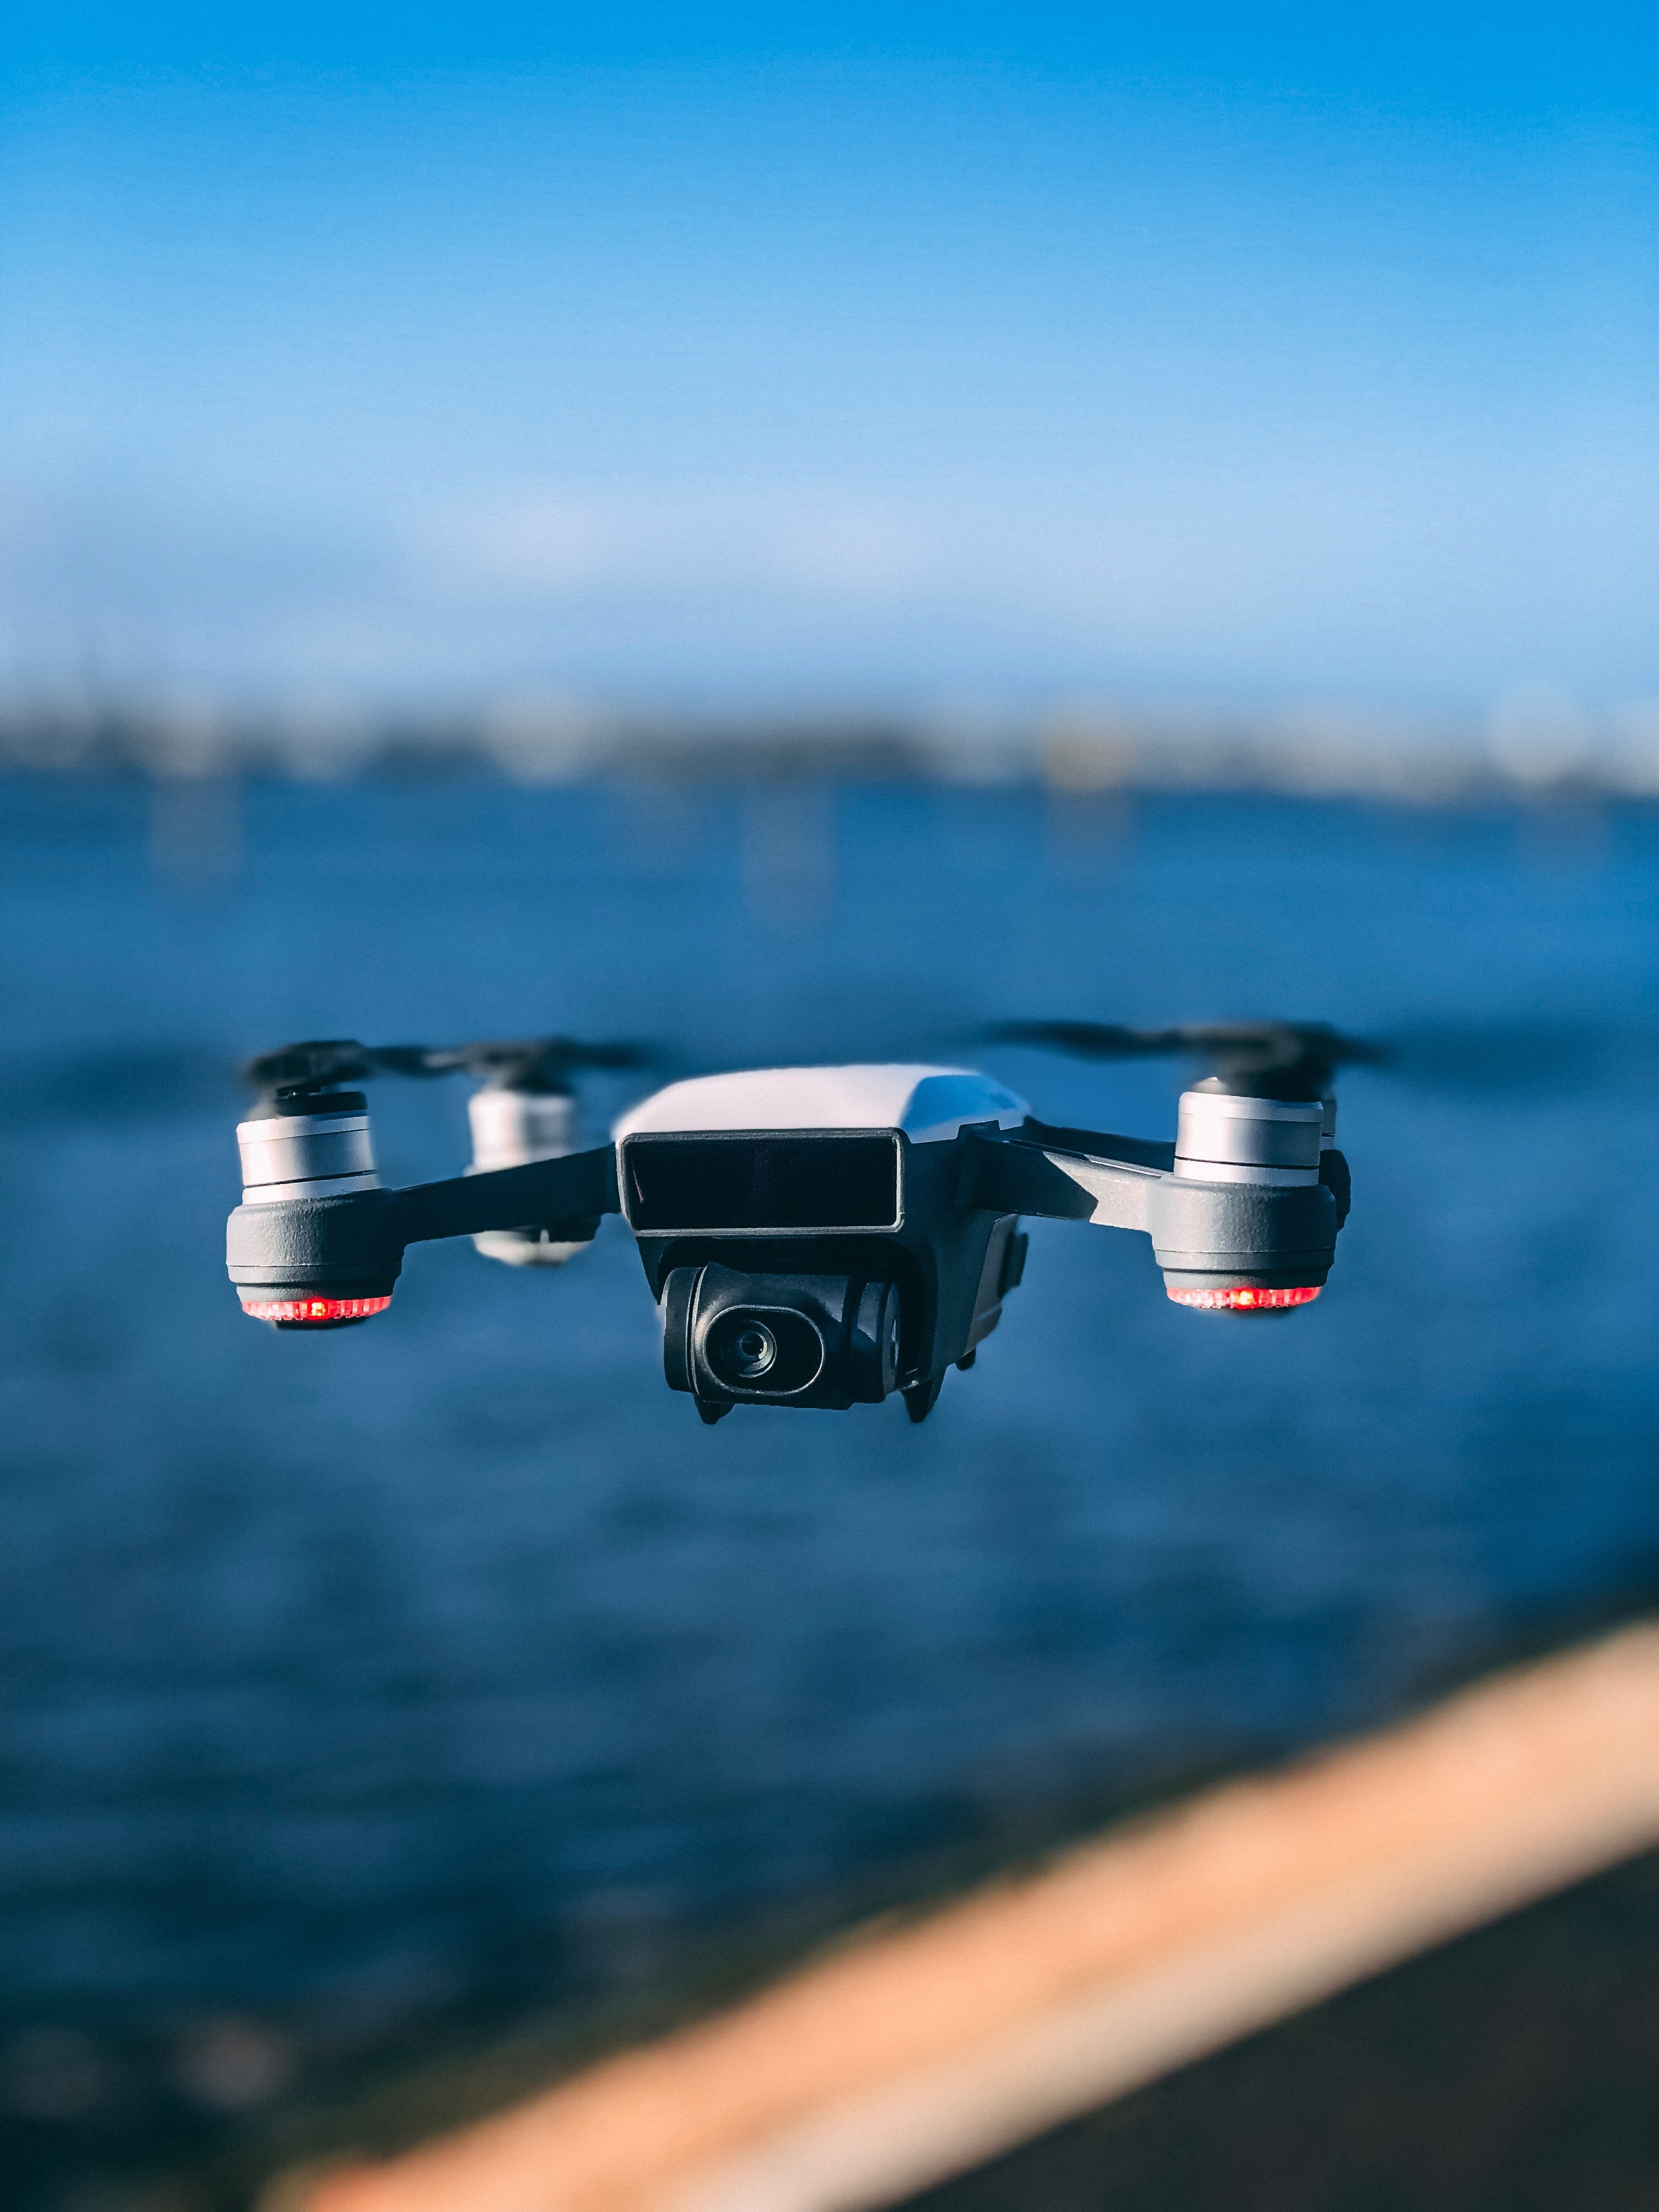 time-lapse photography of DJI drone in flight